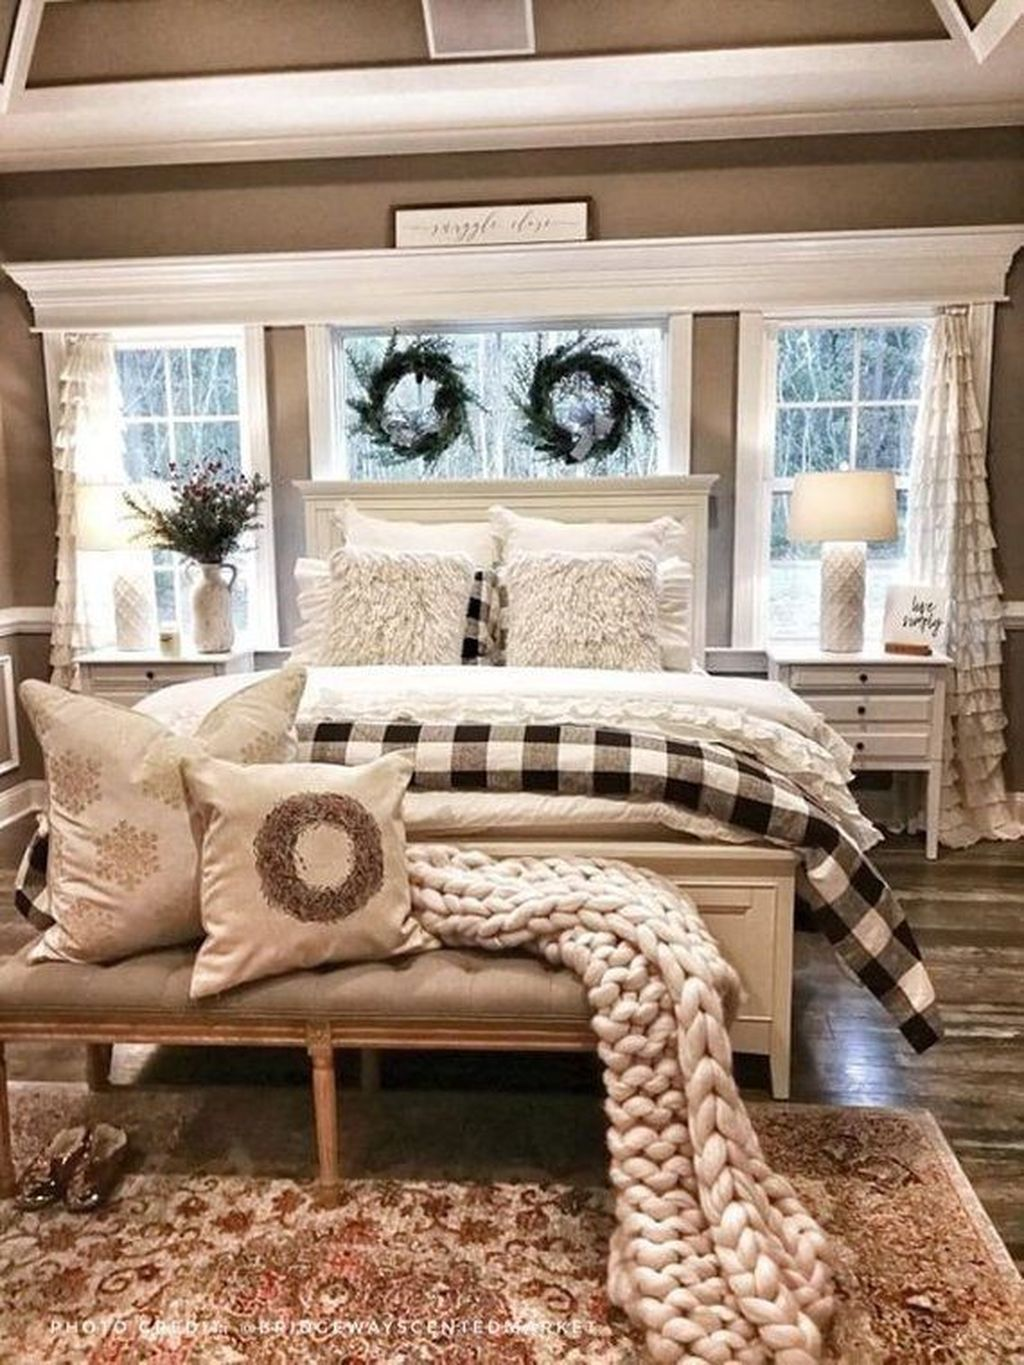 Lovely Lake Bedroom Decorating Ideas 15